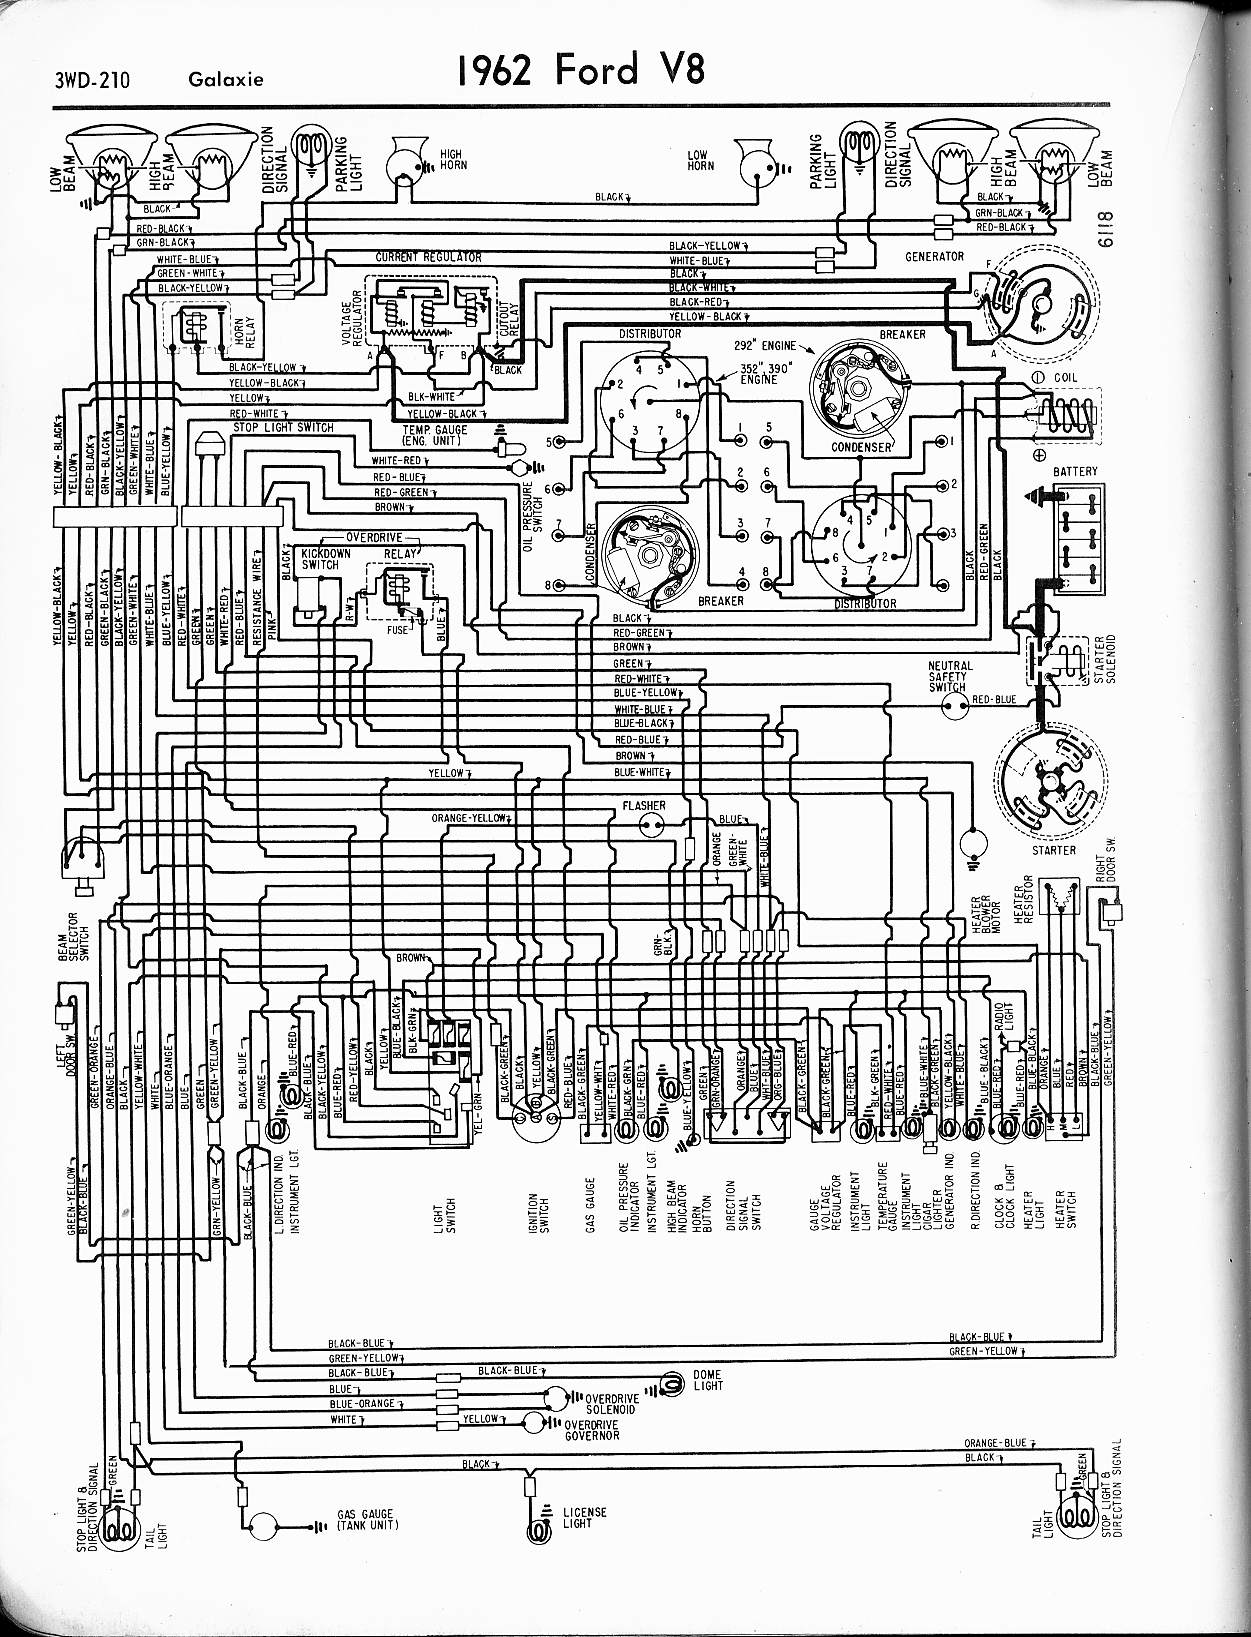 65 ford fairlane wiring diagram all wiring diagram 65 Fairlane 2 Door Wagon